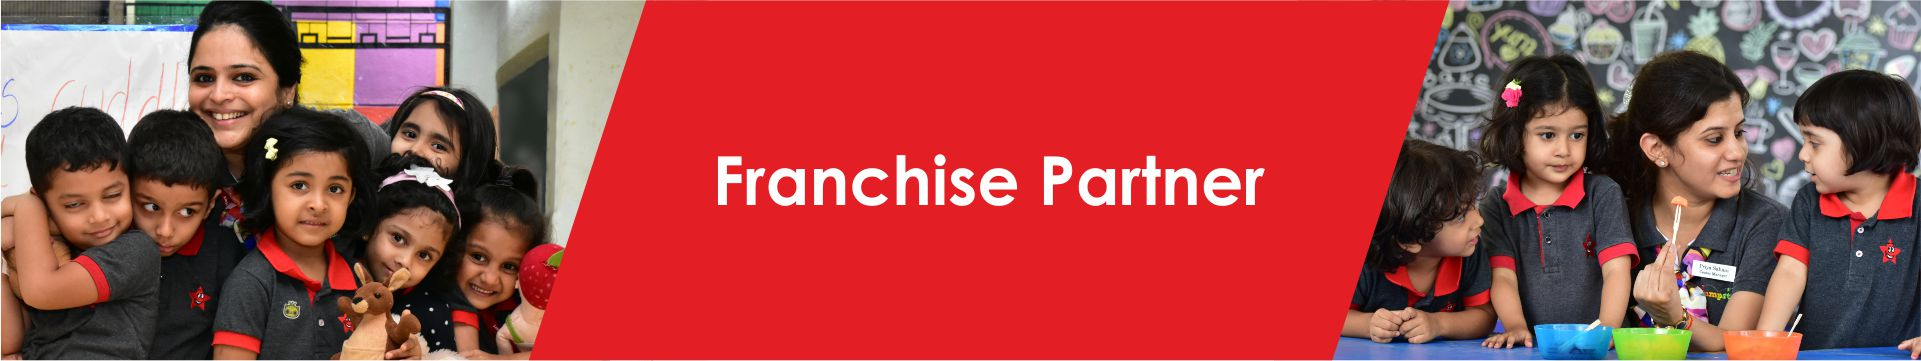 franchise partner banner